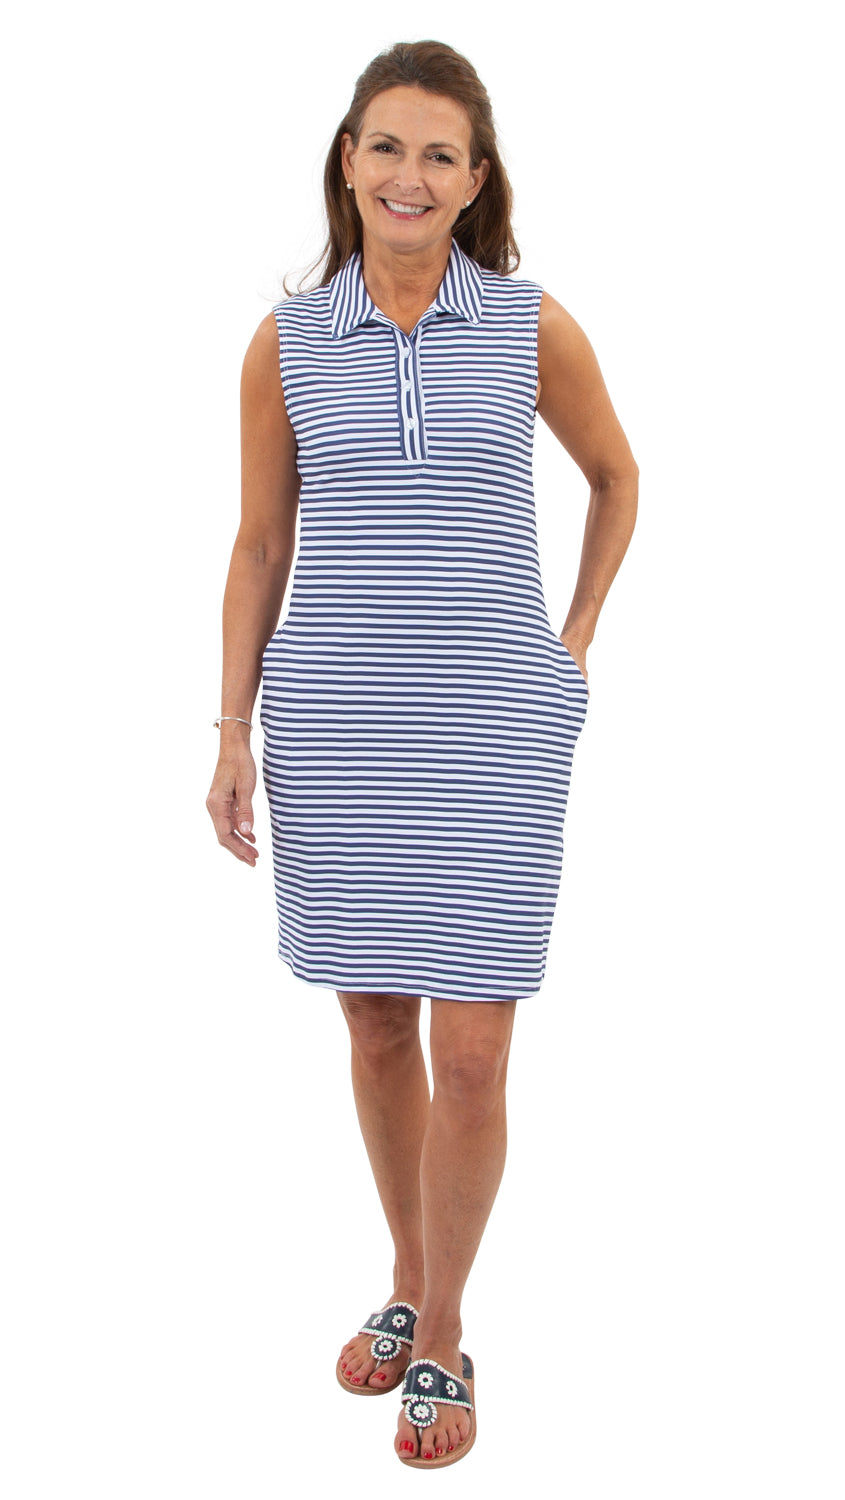 Port Sleeveless Dress - Navy/White Stripe-SAMPLE FINAL SALE